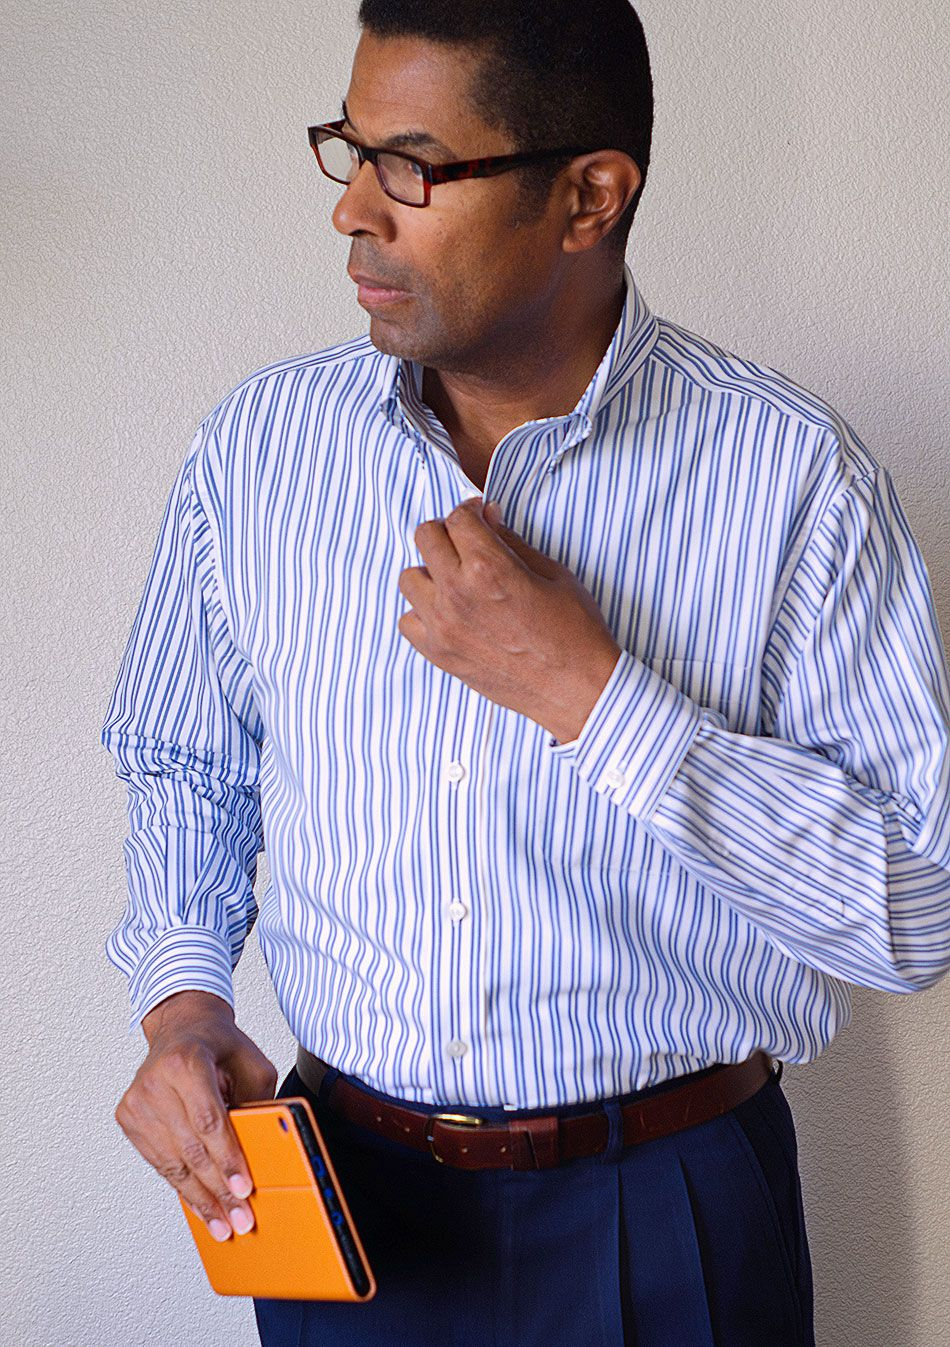 Roundtree and Yorke Gold Label Shirt Review (Thrifted